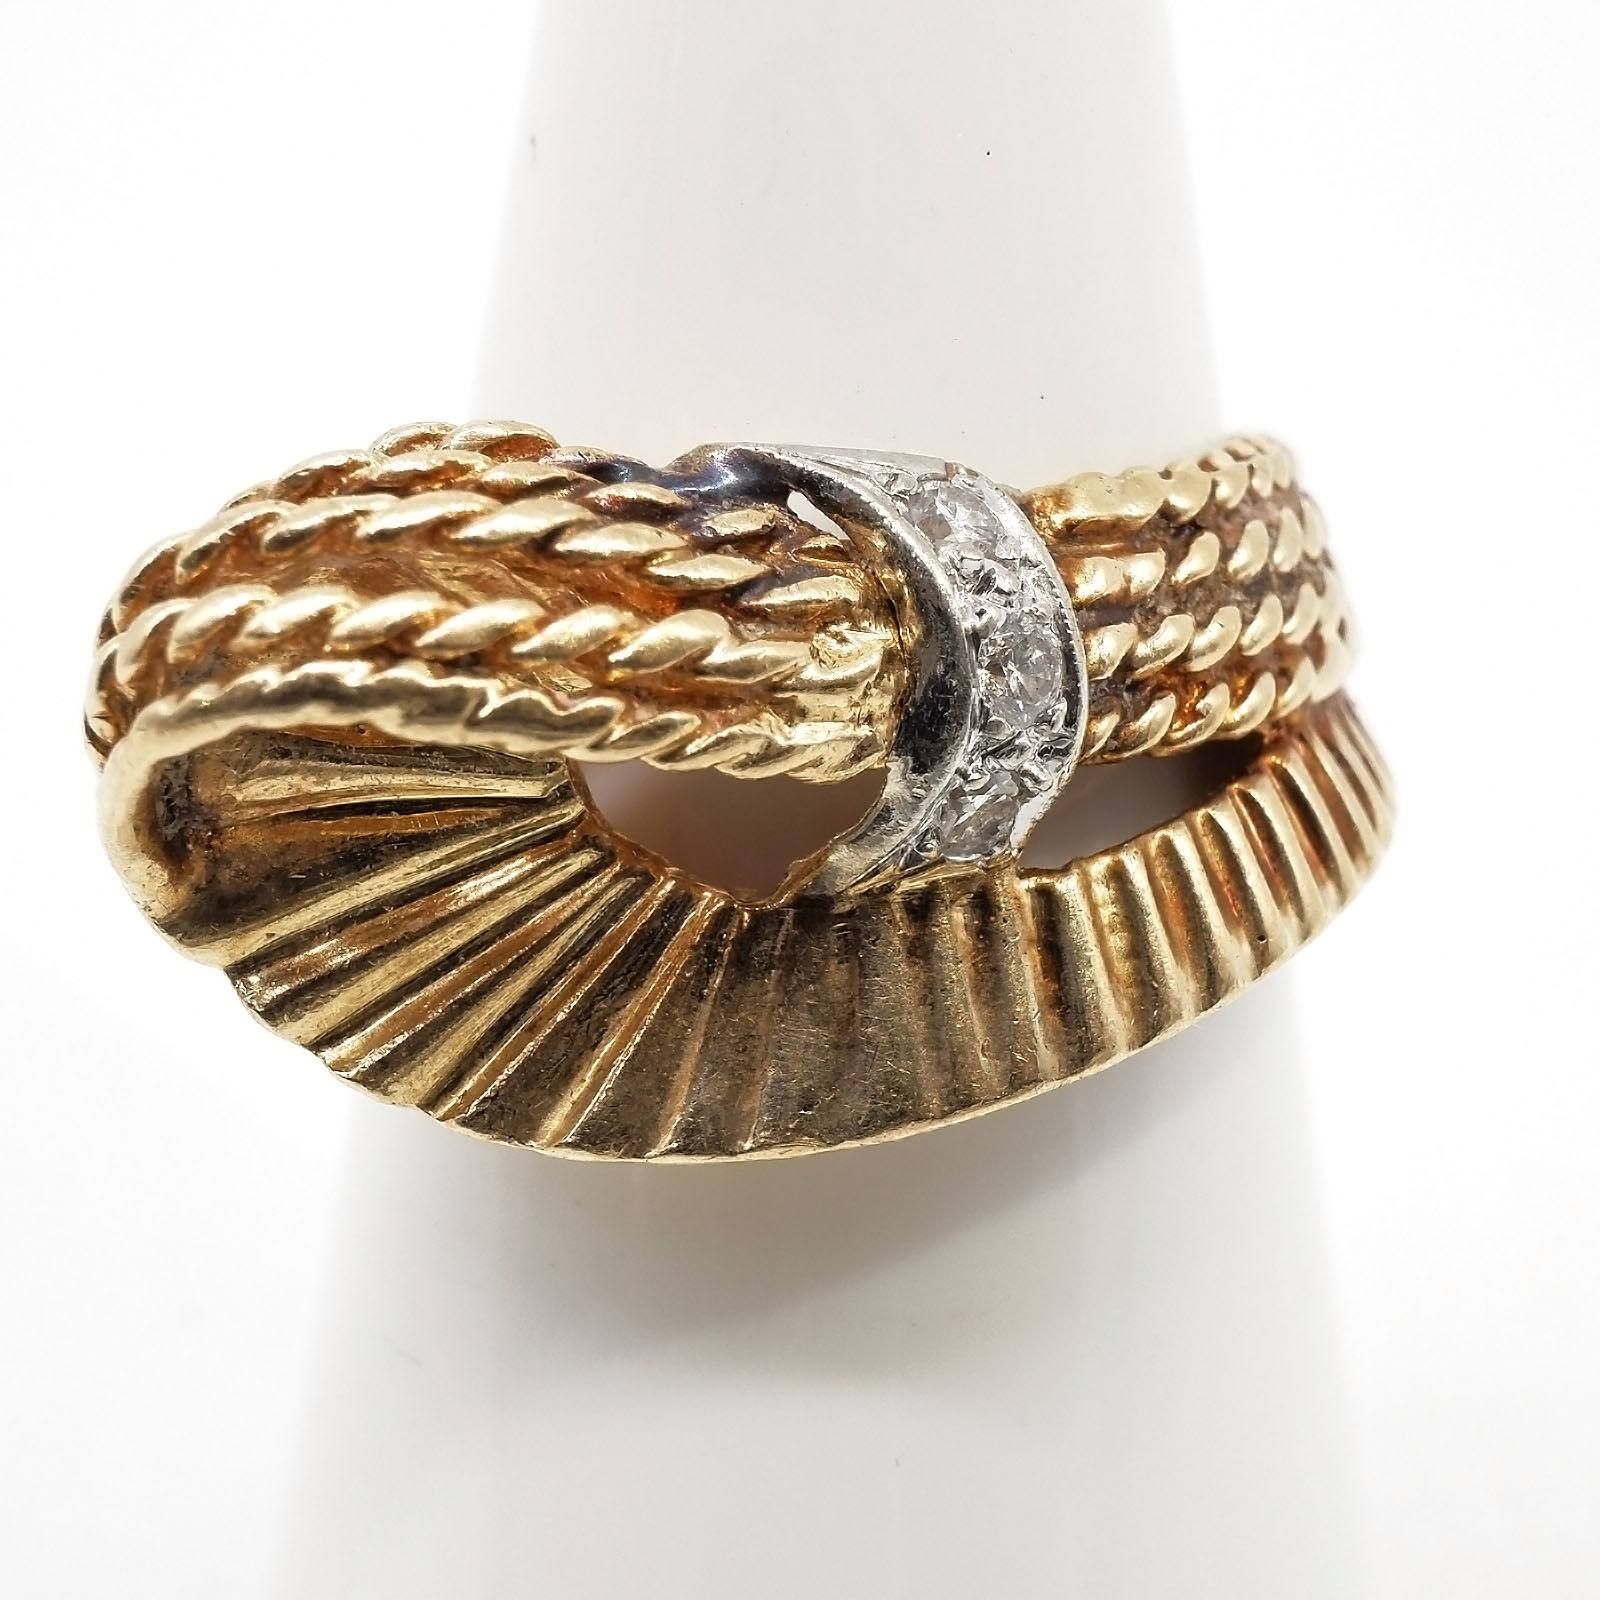 '14ct Yellow Gold Ring with Abstract Style Knot With a White Gold Sheet and Three Round Brilliant Cut Diamonds, 6.4g'